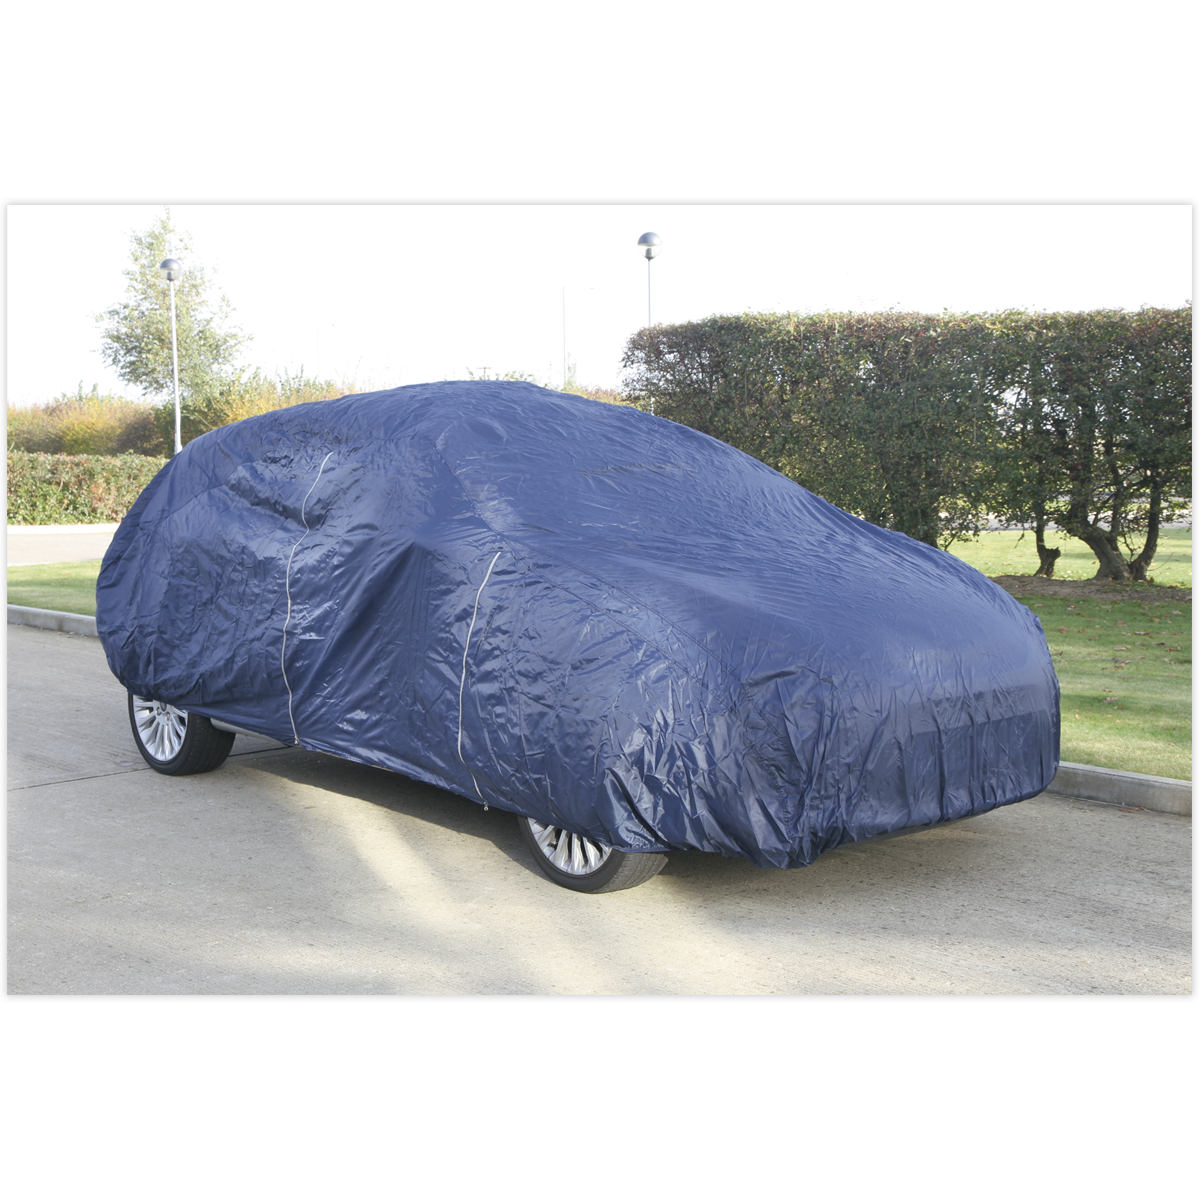 Car Cover Lightweight Medium 4060 x 1650 x 1220mm